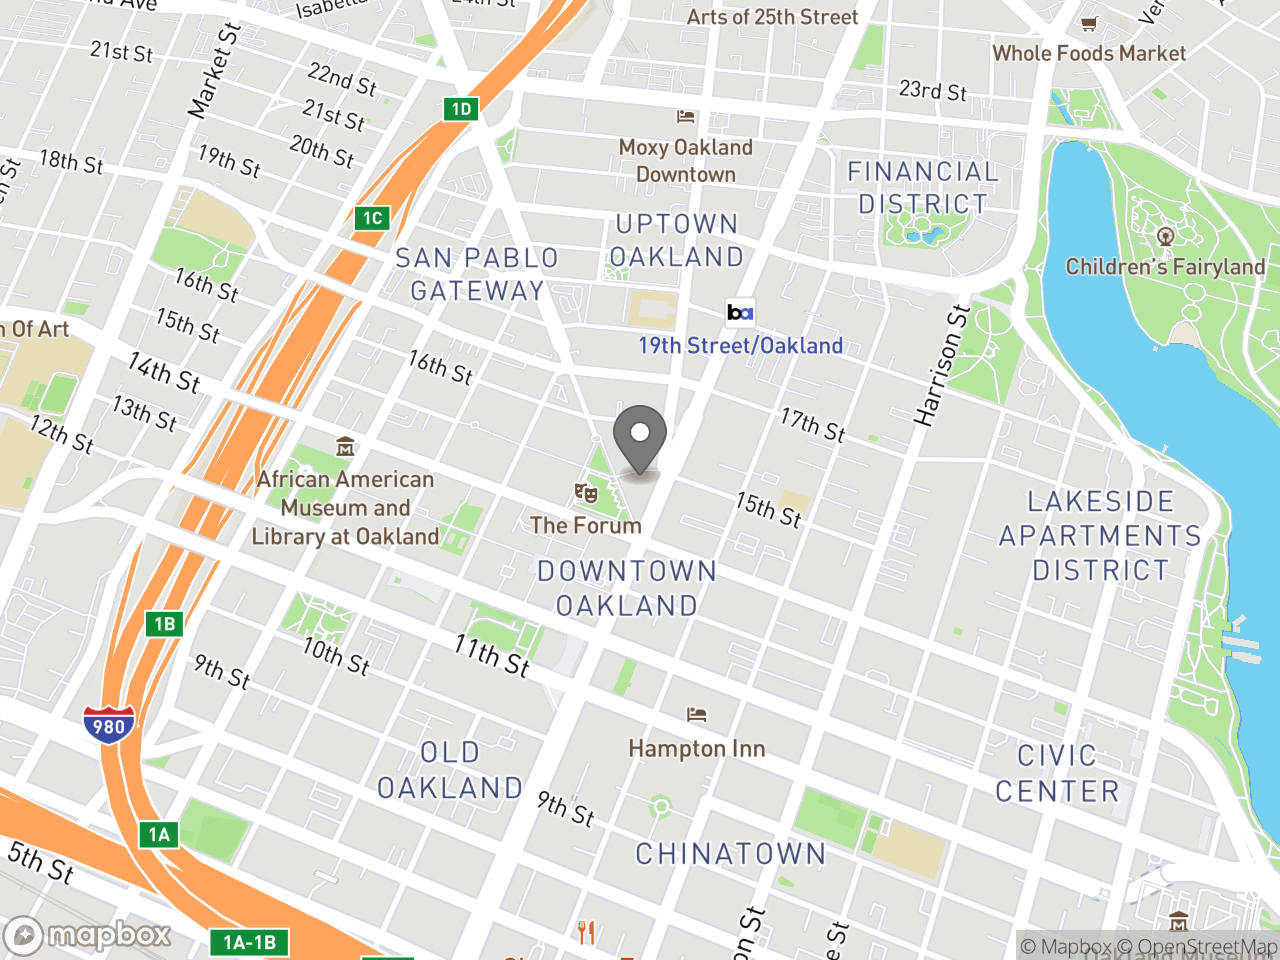 Map location for Oakland Youth Advisory Commission (OYAC), located at 1 City Hall in Oakland, CA 94612